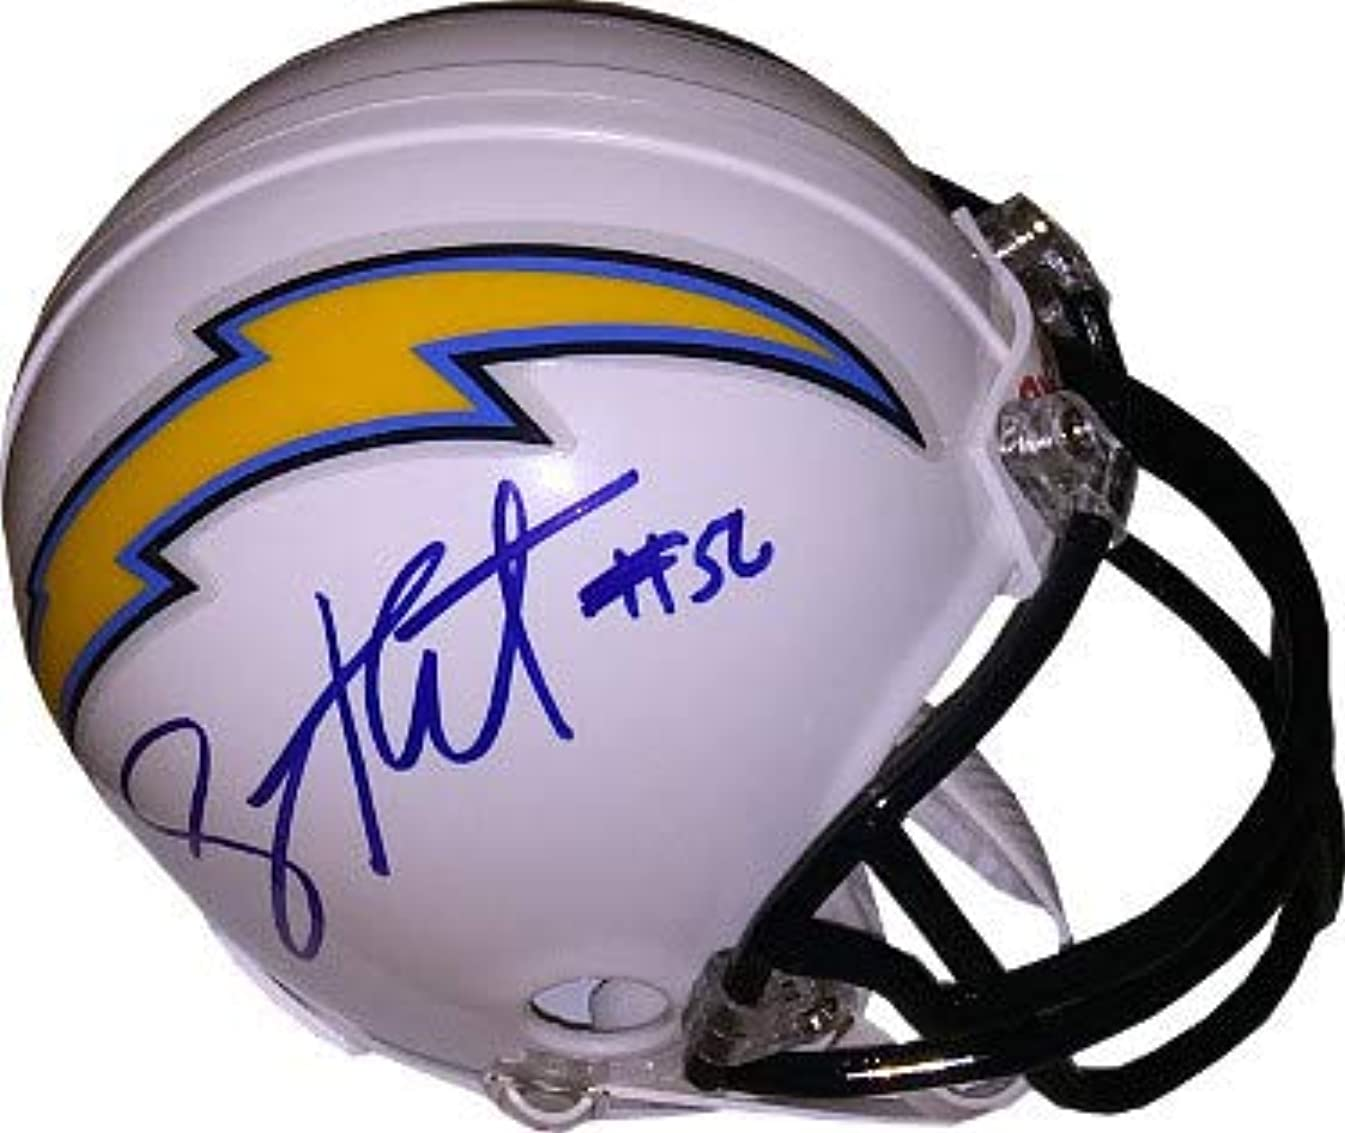 Shawne Merriman Autographed Signed Memorabilia San Diego Chargers Riddell White Mini Helmet #56 (Blue Sig) - JSA Authentic